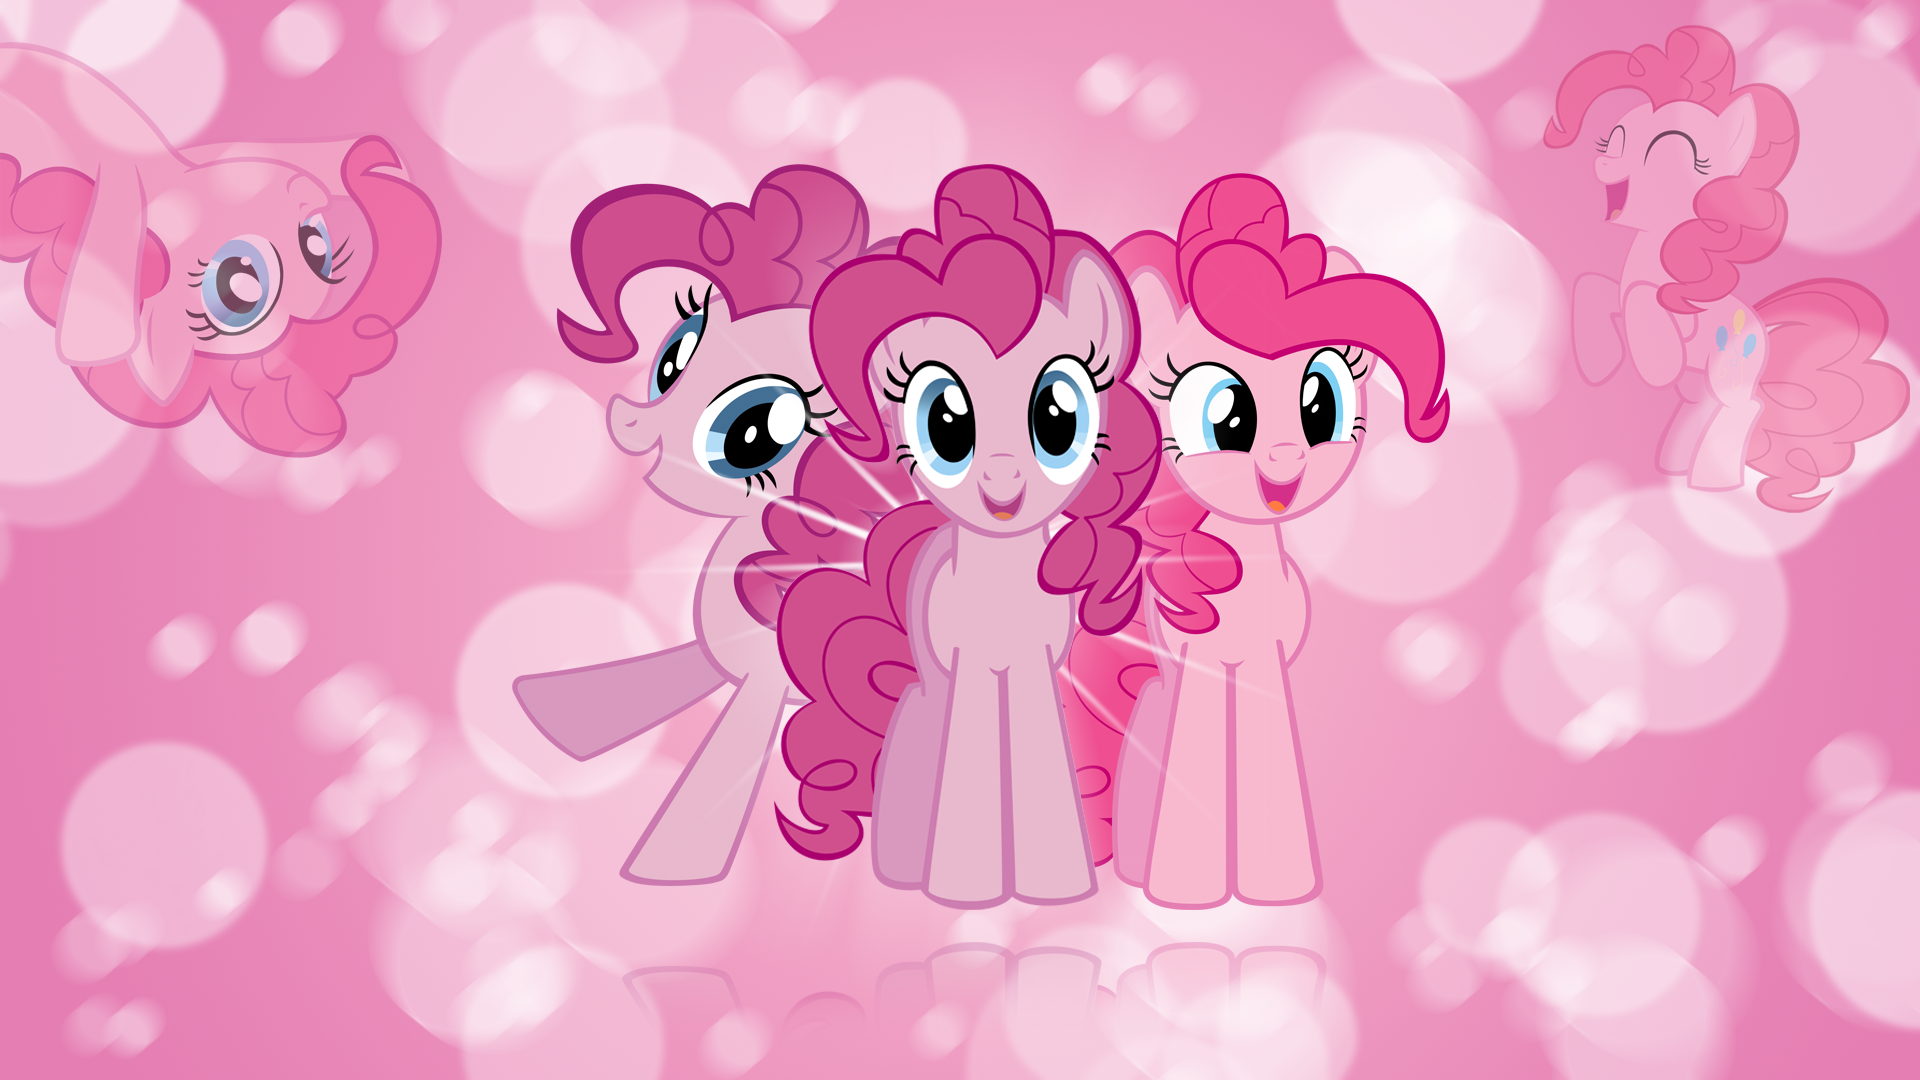 Pinkie Pie 'Bubbles!' Wallpaper by BlueDragonHans, kitsuneymg, Mihaaaa, Peachspices and Tigersoul96